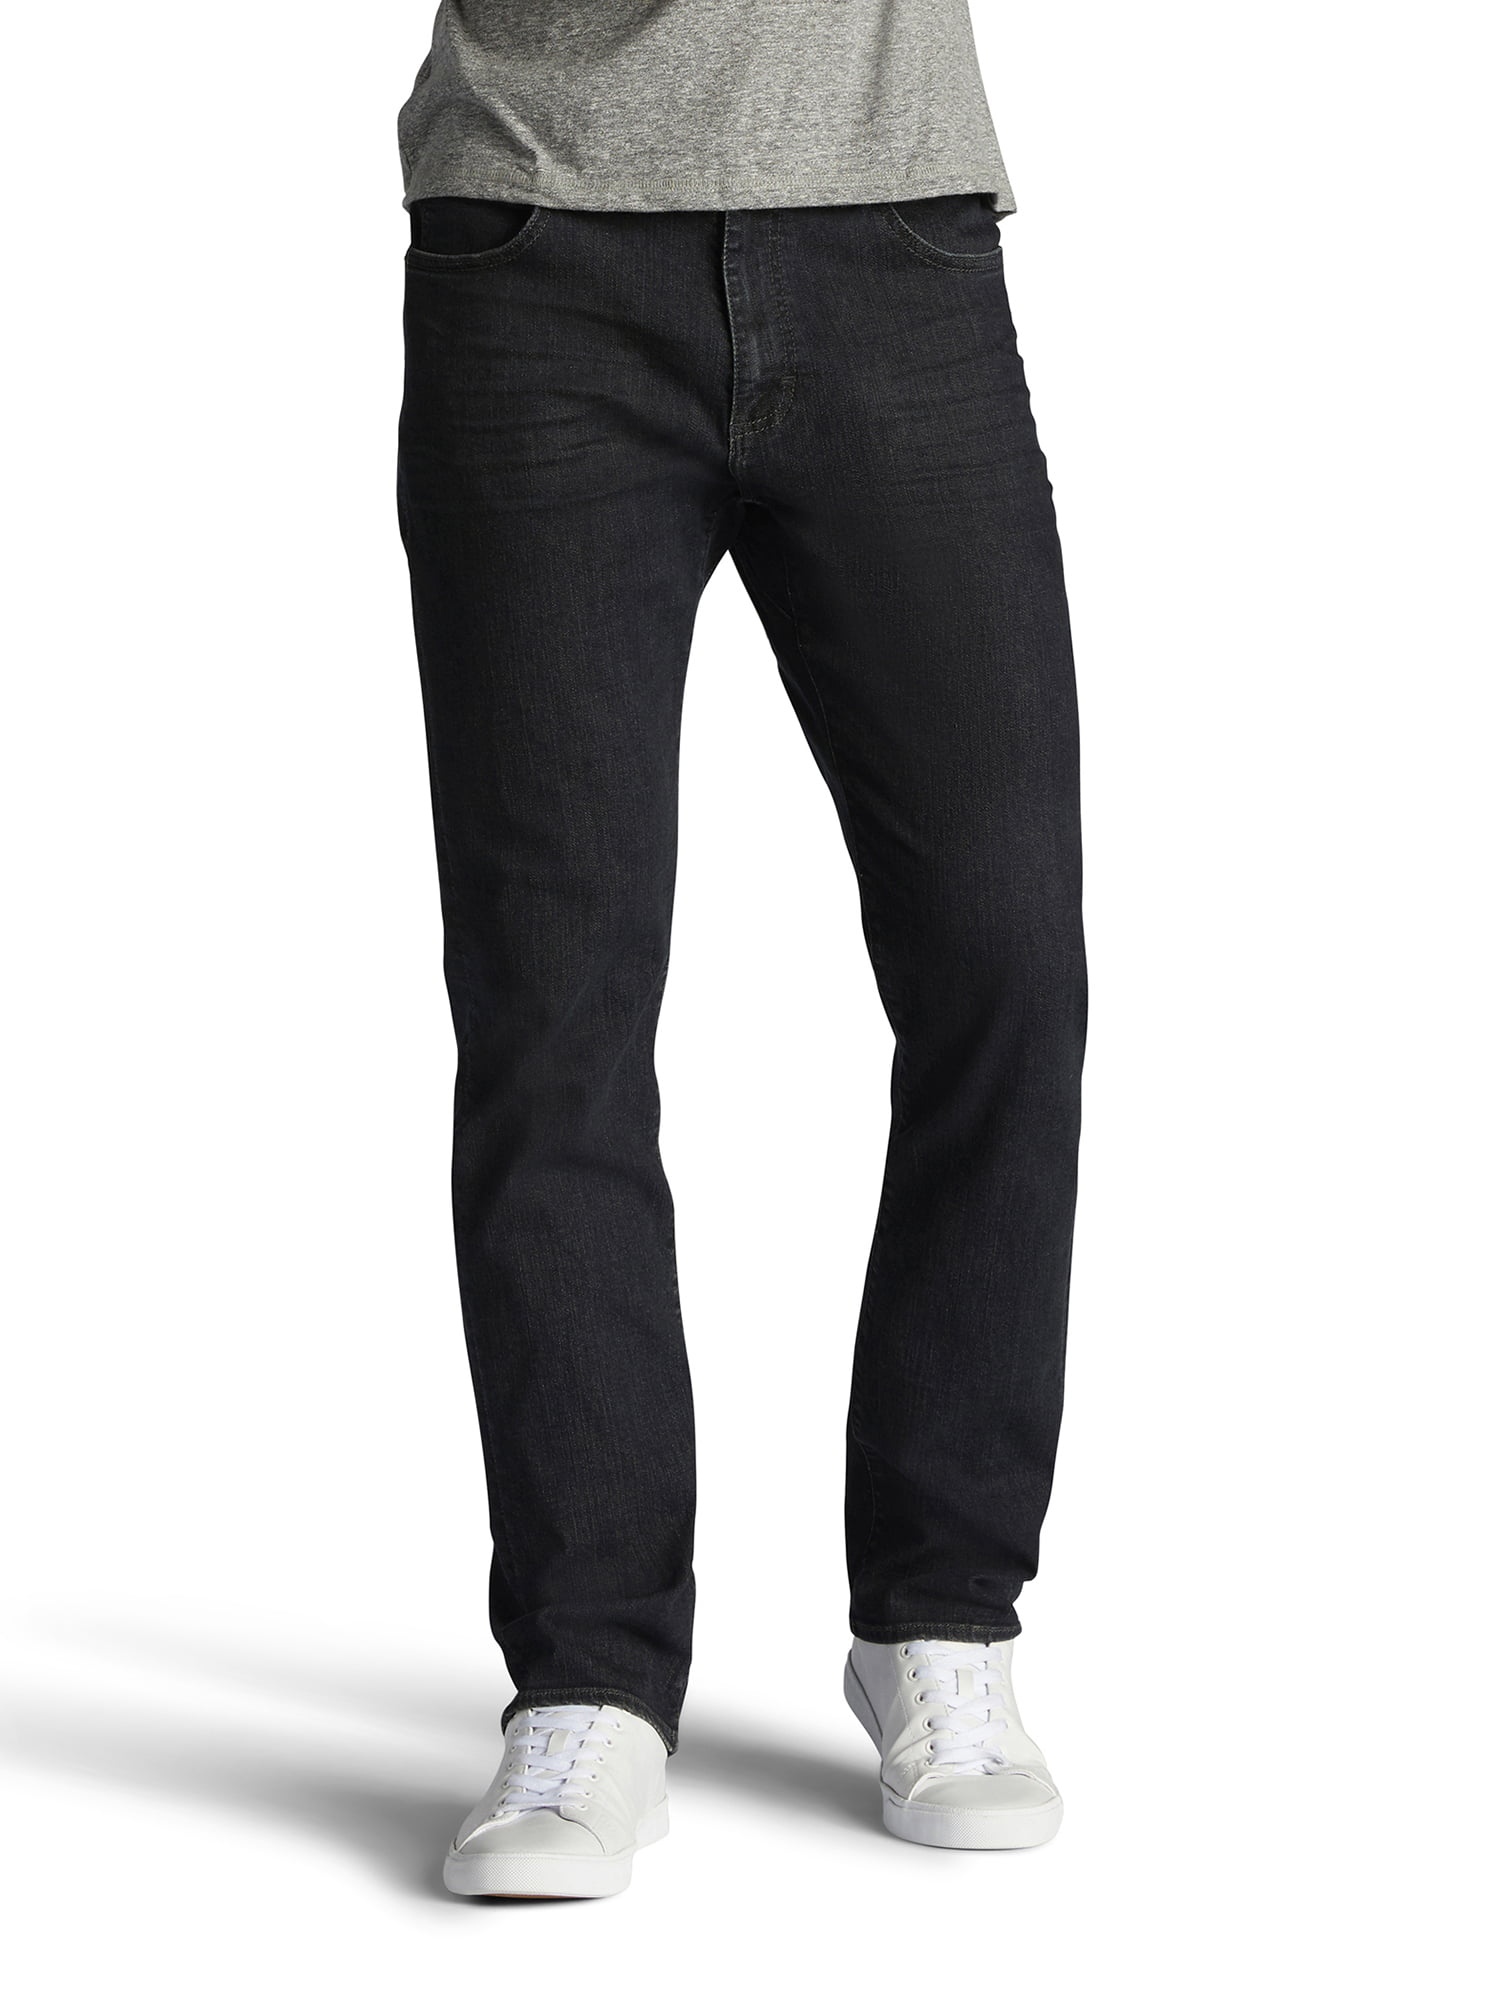 LEE Mens Modern Series Extreme Motion Athletic Jean